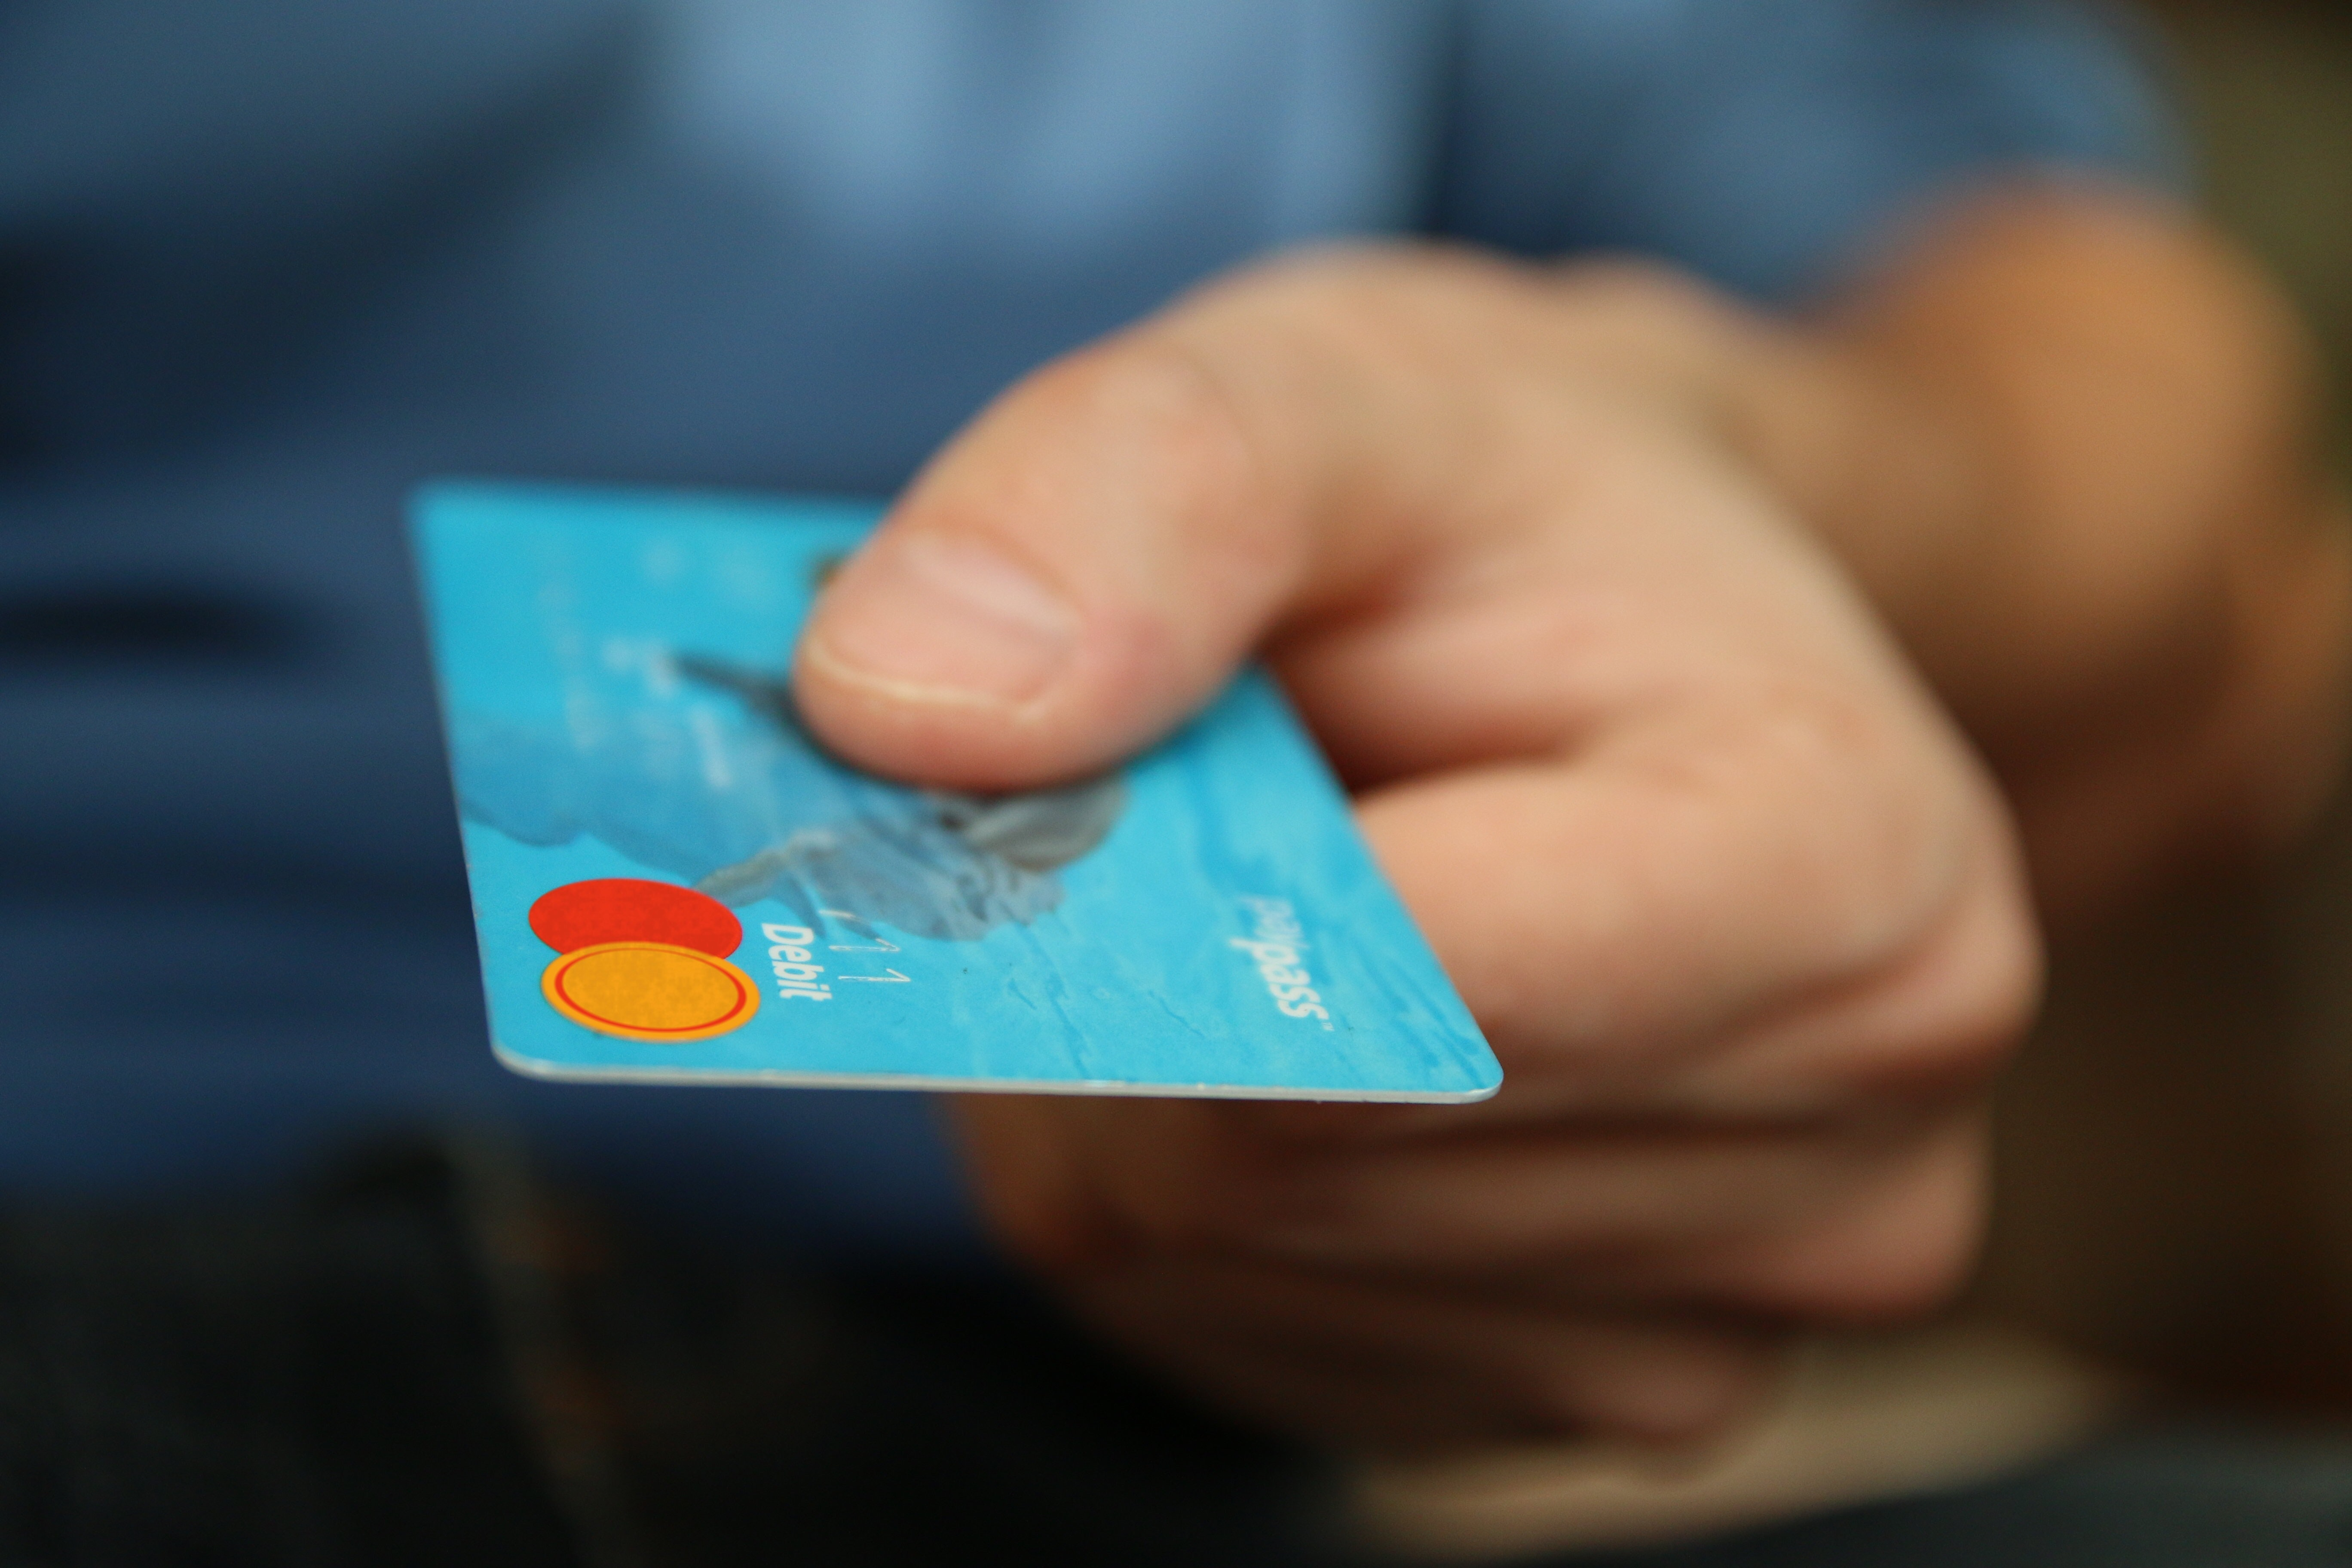 Man holding  a credit card to pay for a purchase